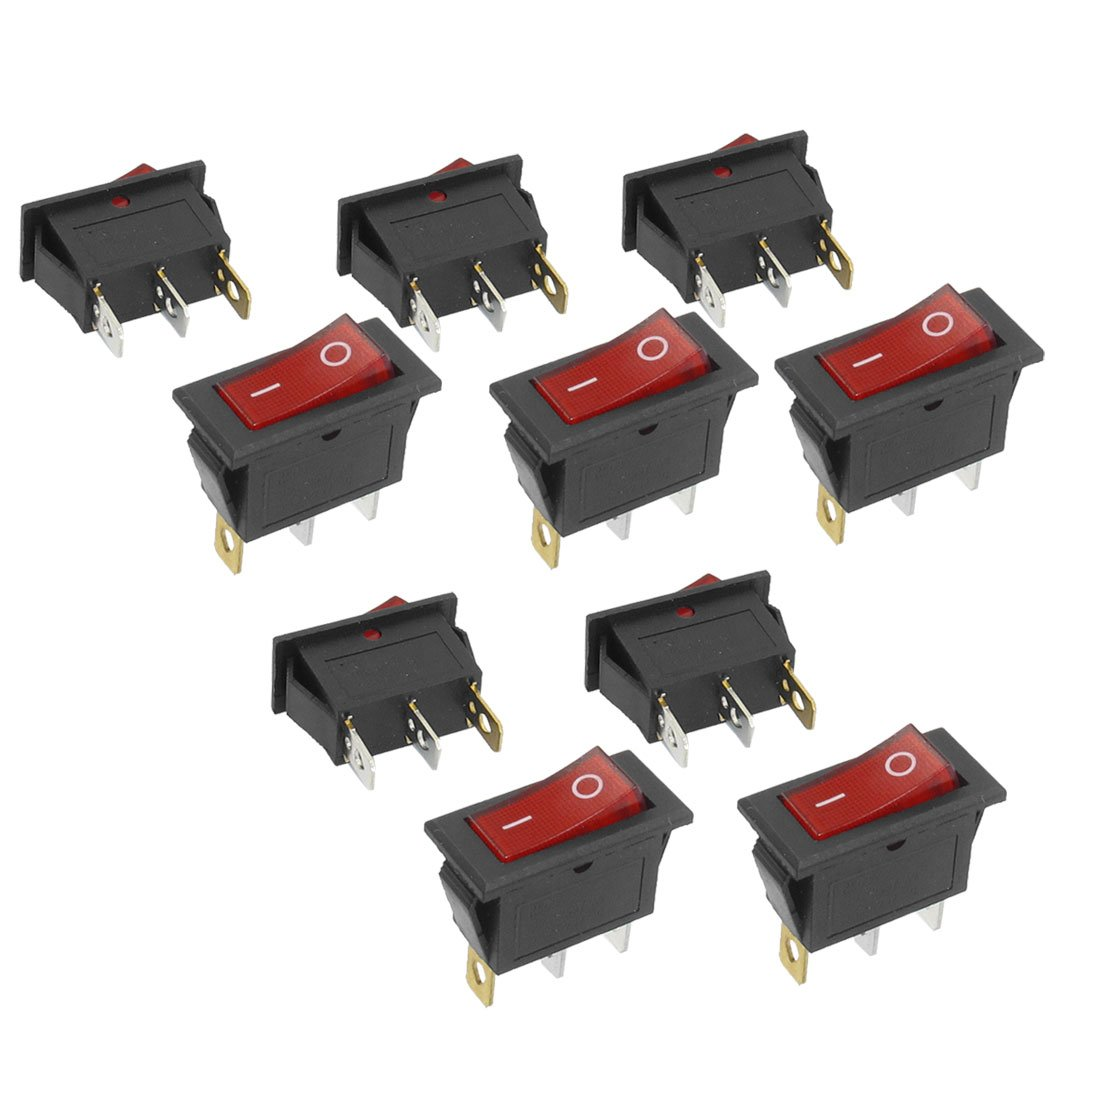 Promotion! 10Pcs 3 Pin SPST Neon Light On/Off Rocker Switch AC 250V/10A 125V/15A 5 pcs ac 6a 250v 10a 125v 3 pin black button on on round boat rocker switch